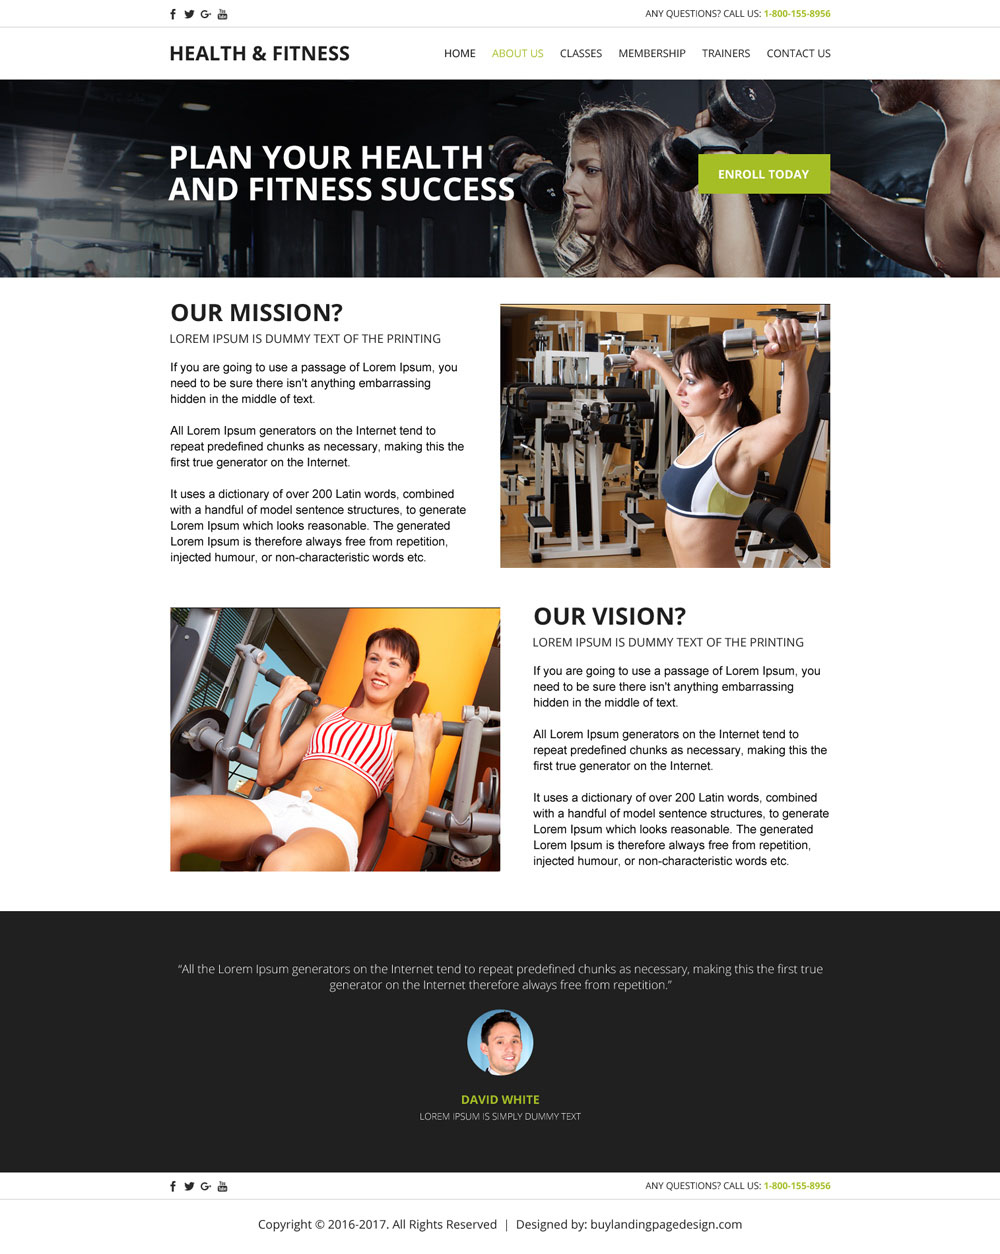 health-and-fitness-html-website-template-to-create-your-professional-health-and-fitness-website-about-page-001